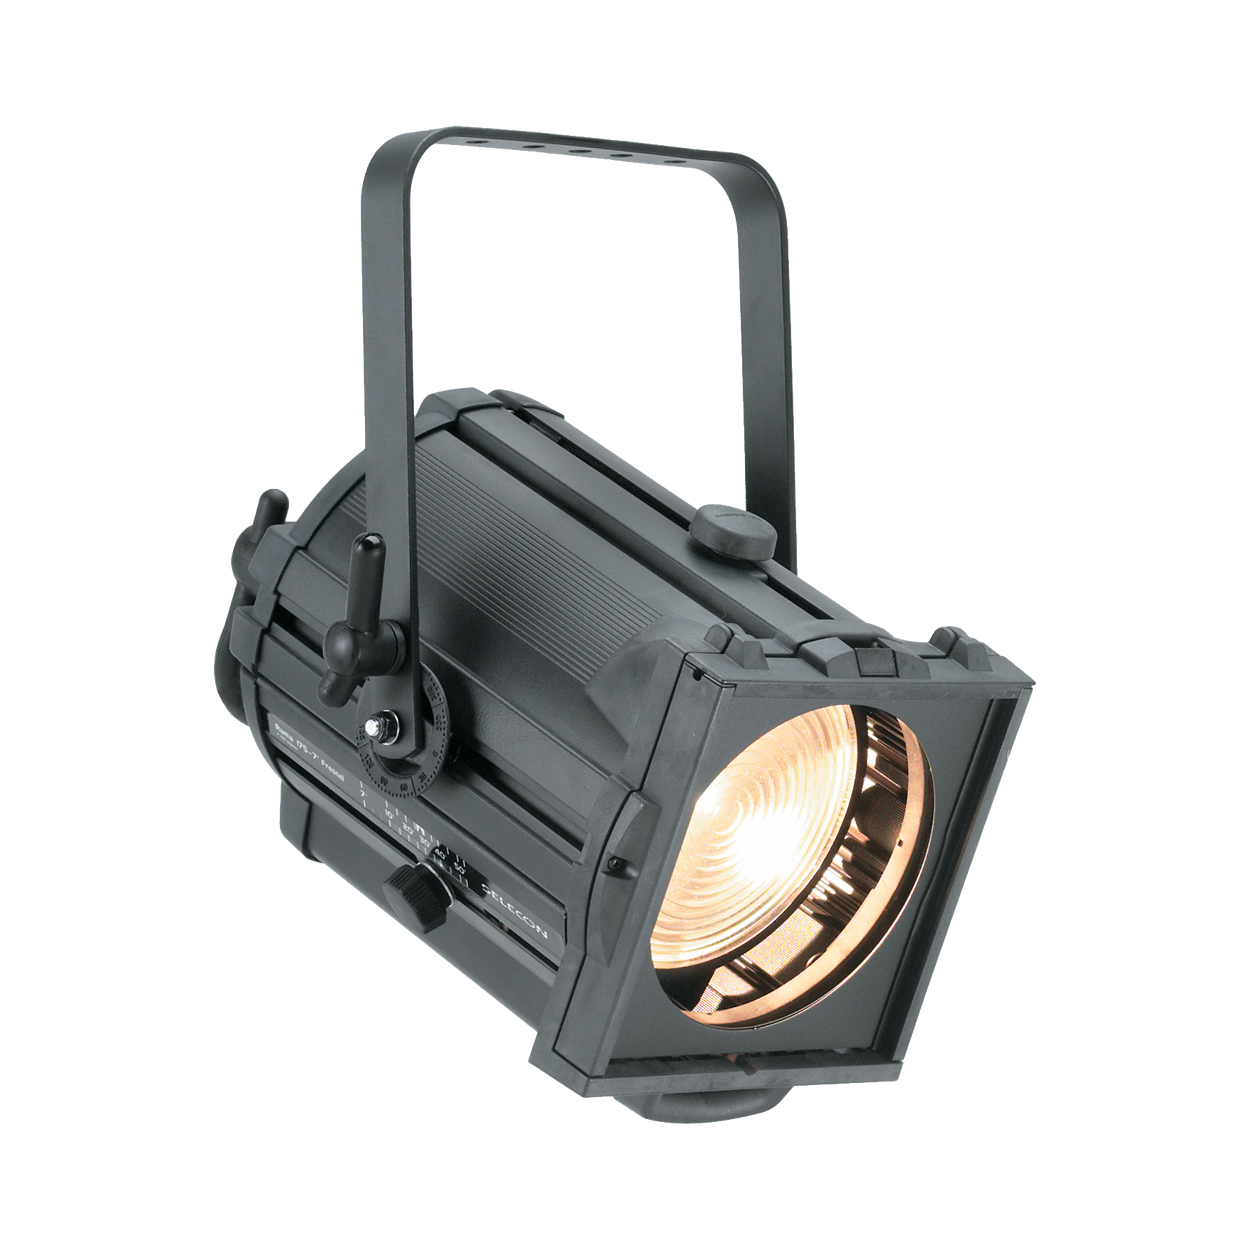 Philips Selecon Rama 7°-56° High Performance Fresnel